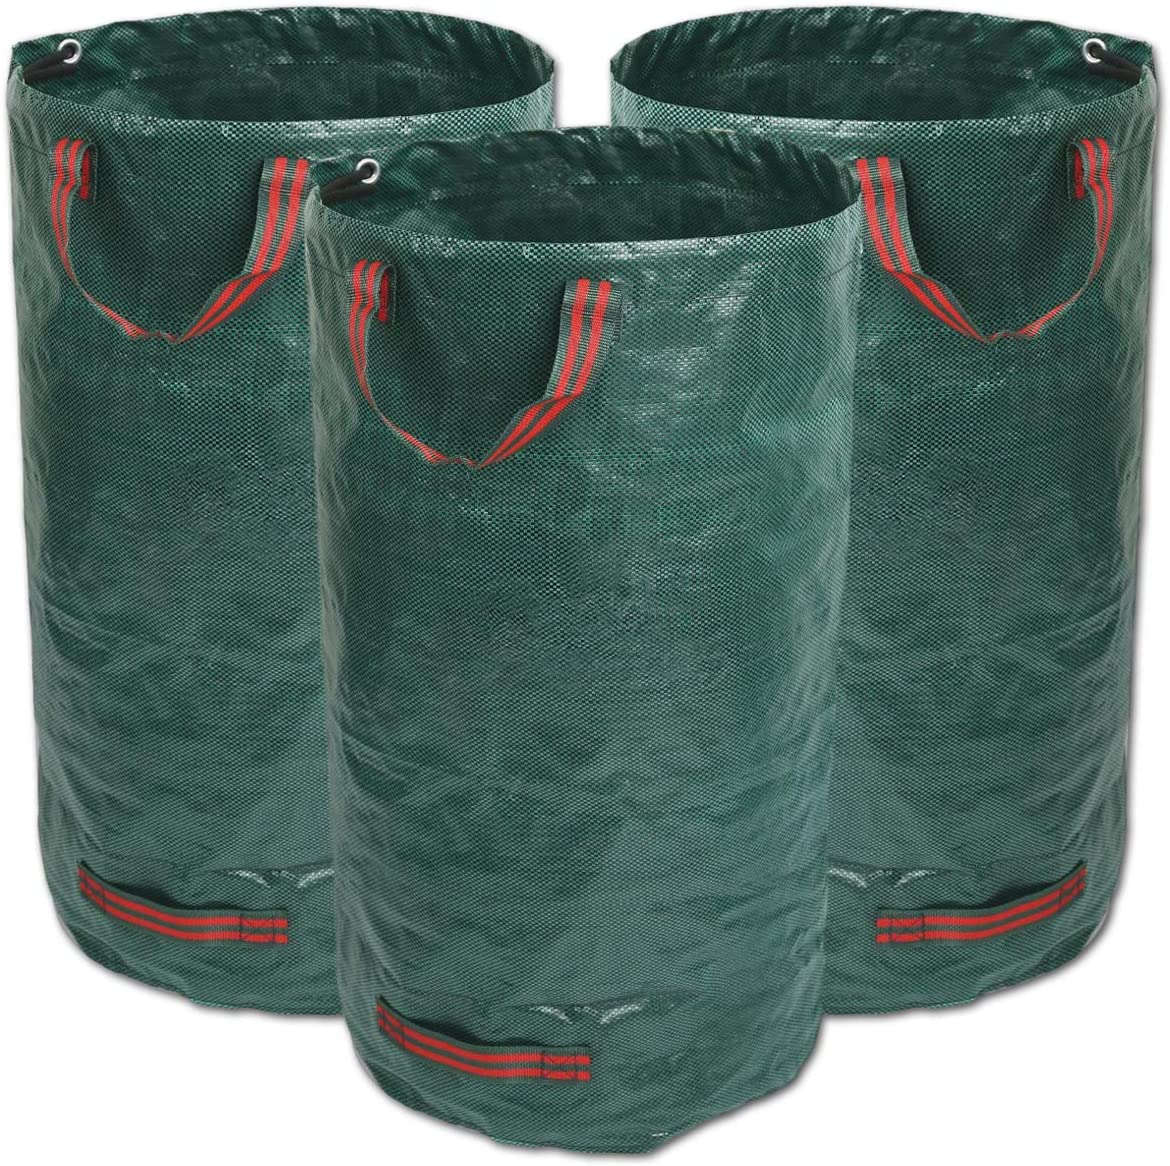 3 GIOVARA 3 x 120L Garden Waste Bags,Waterproof Heavy Duty Large Refuse Sacks with Handles,Foldable and Reusable